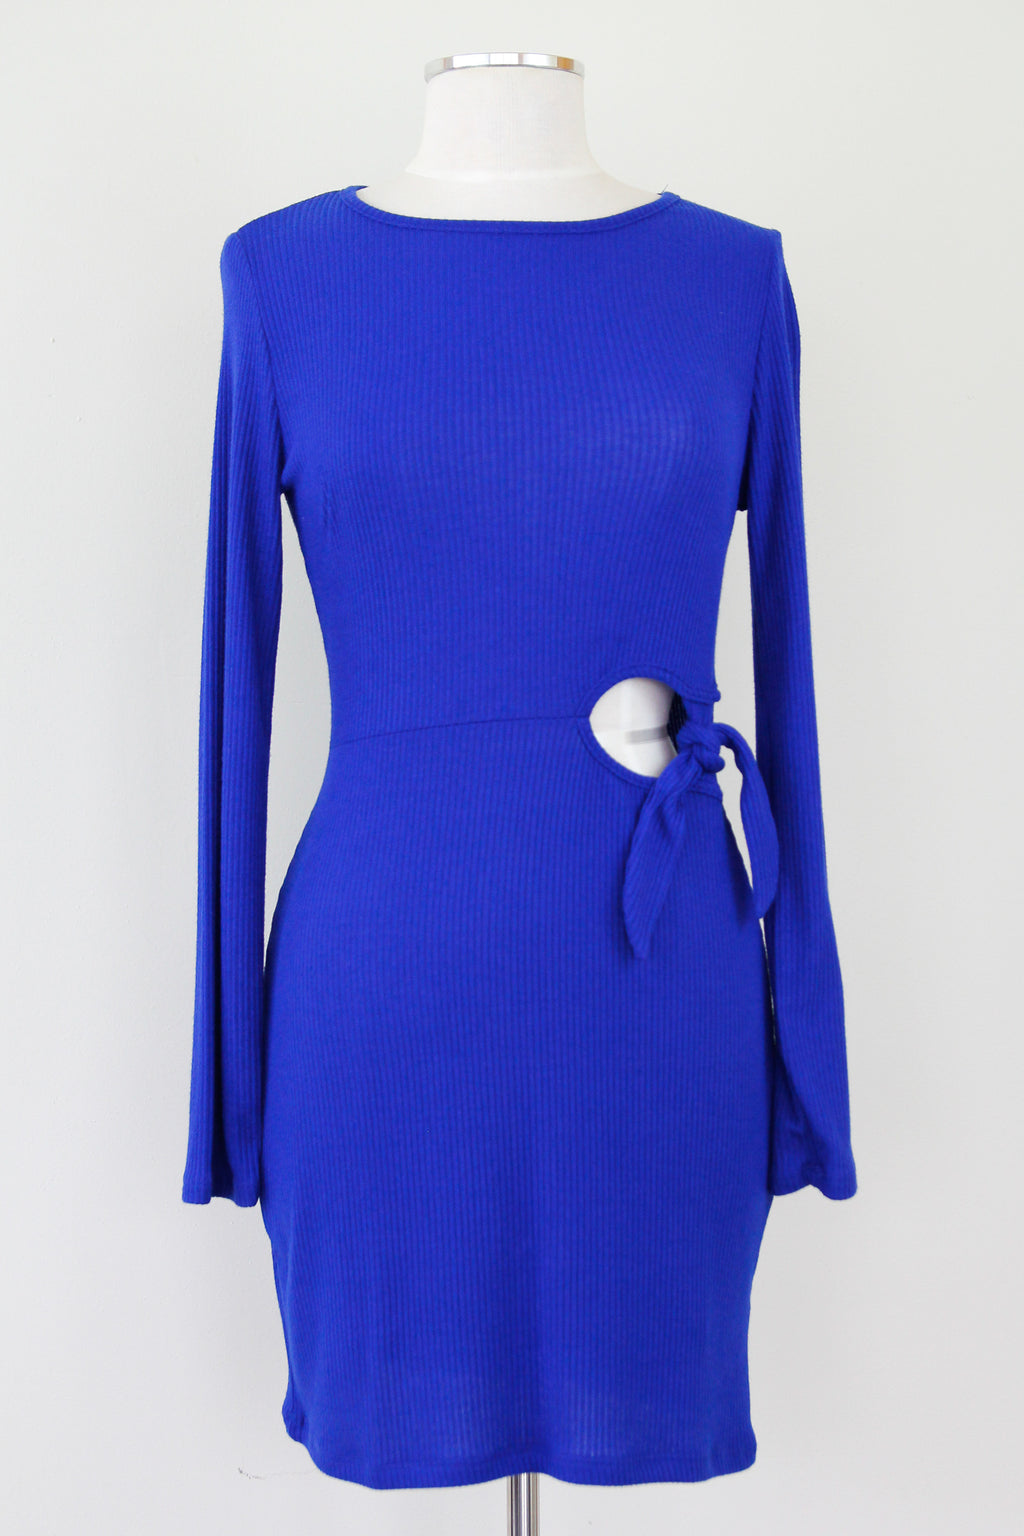 Ribbed Tie Sweater Dress - Cobalt